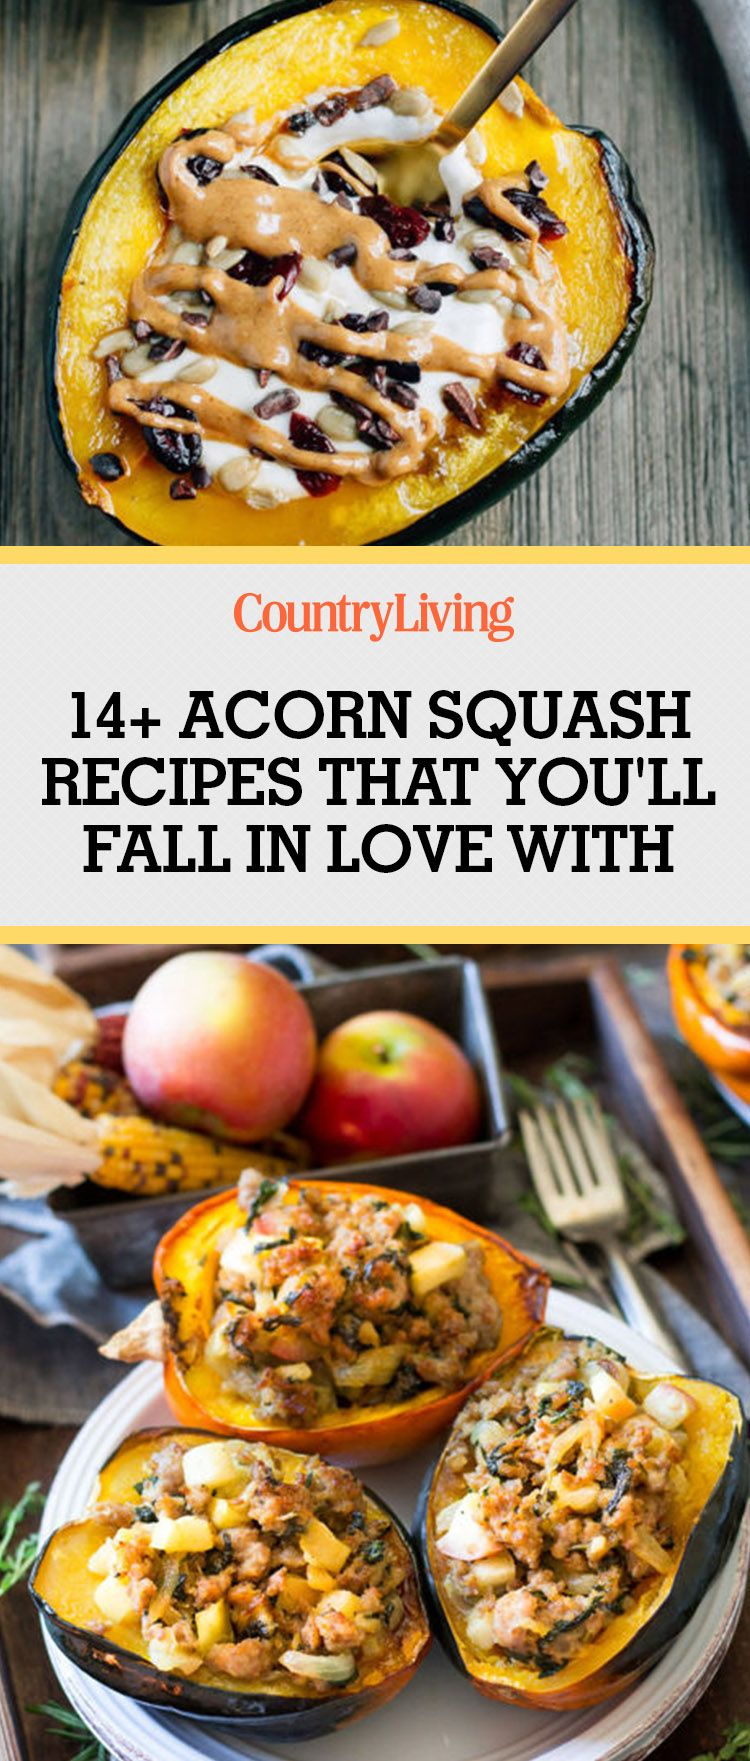 30 Acorn Squash Recipes for Your Fall Dinners Acorn